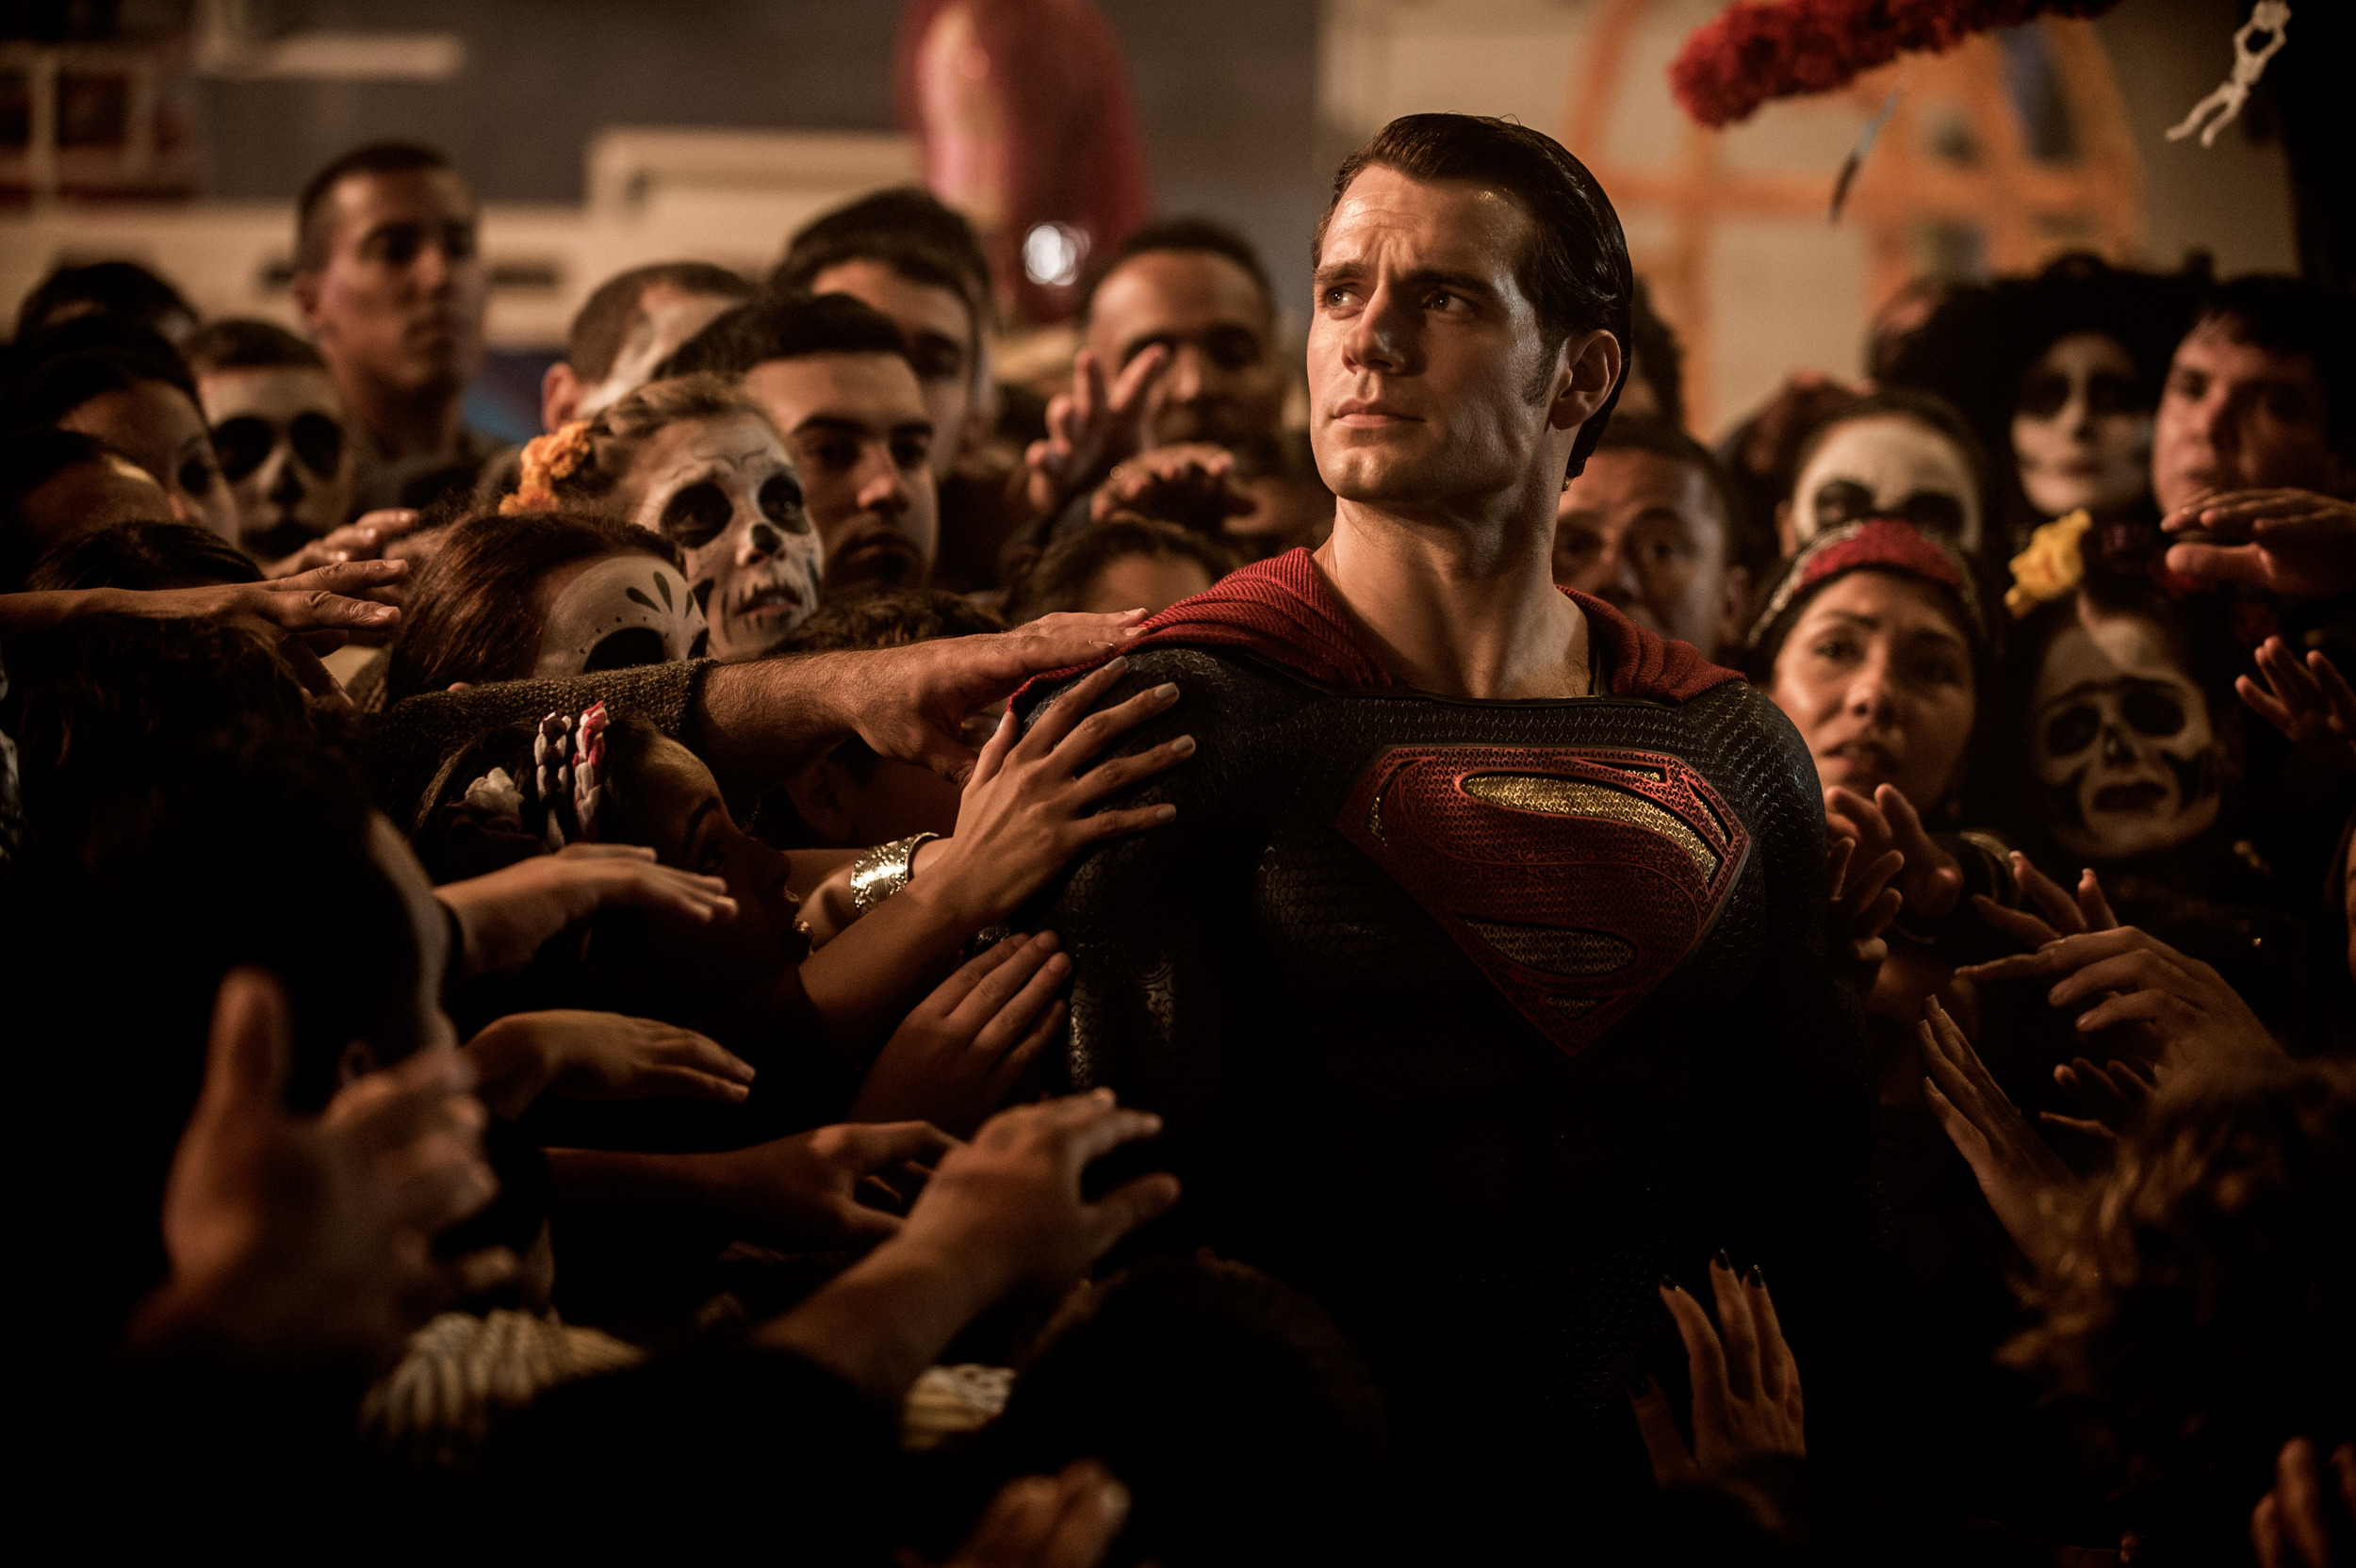 henry-cavill-batman-vs-superman-image.jpg